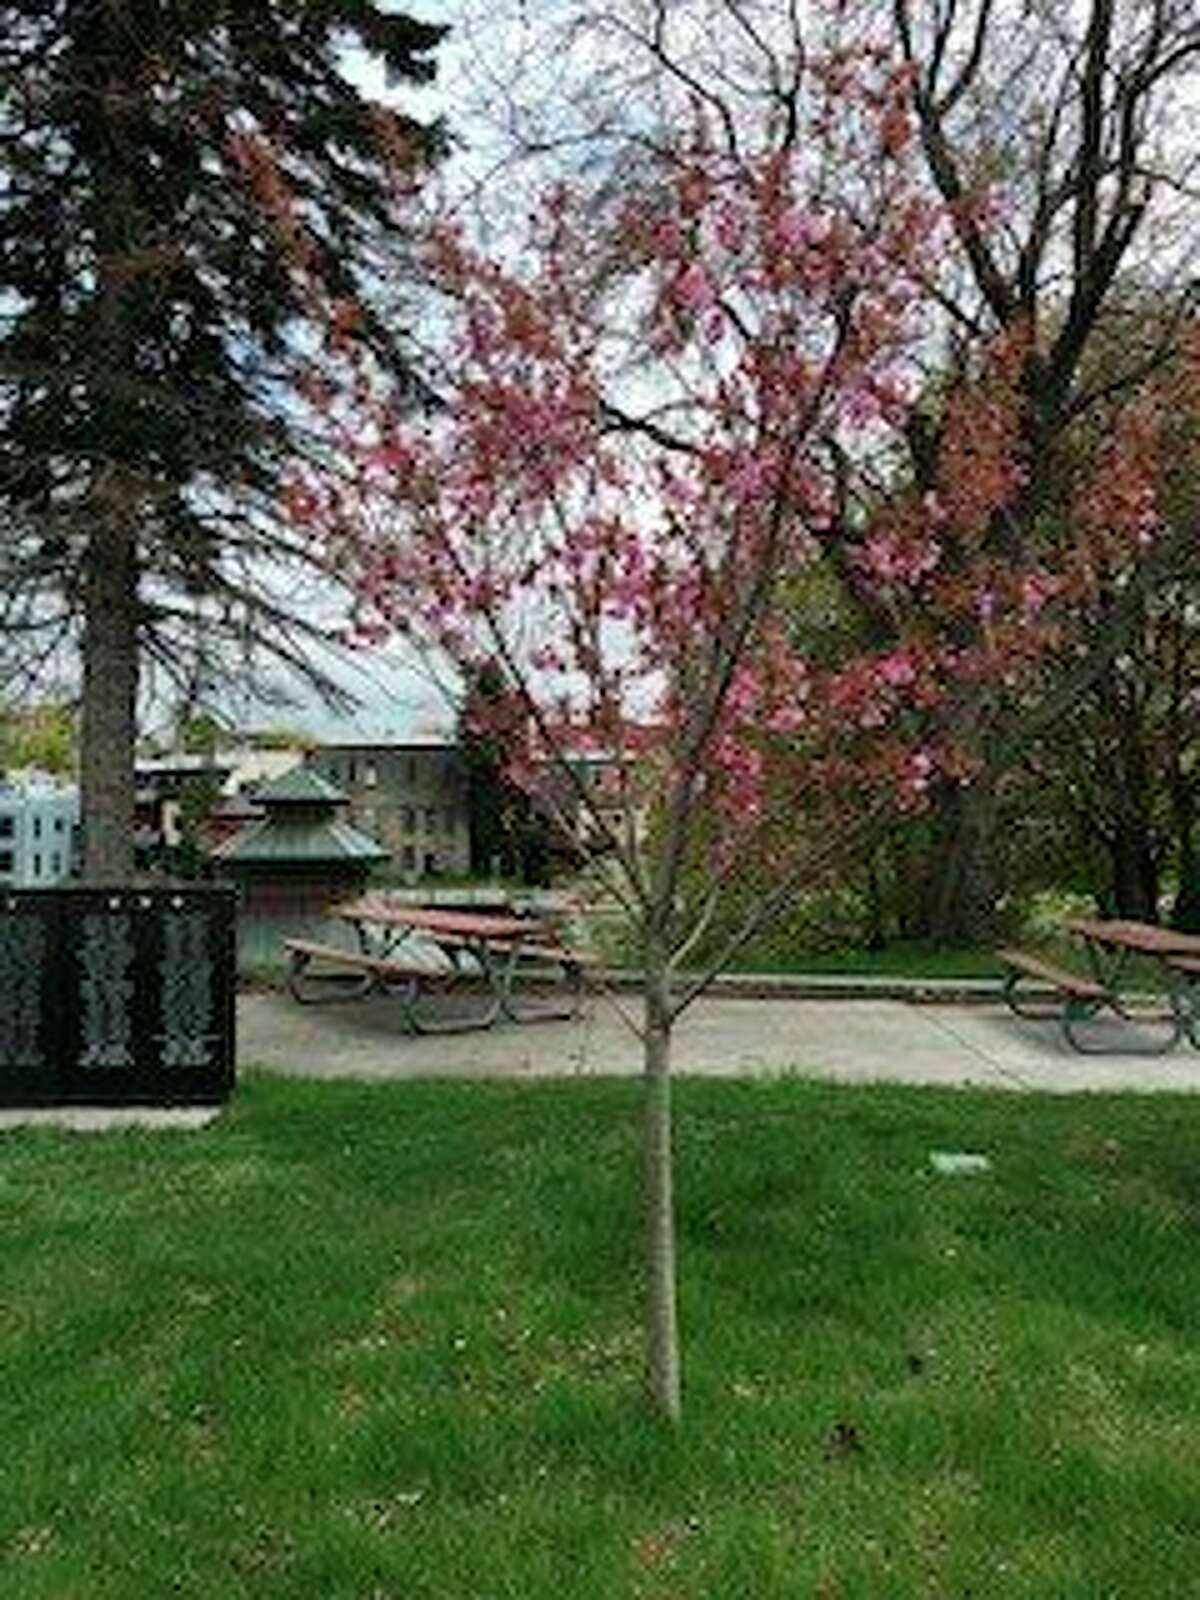 The Manistee Peace Group planted a Kwanzan cherry tree at Veterans Memorial Parkin Manistee in 2017. This year, the group is placing a plaque near the tree during adedication ceremony at 10:30a.m.on June 19 in Veterans Memorial Park. (Courtesy photo)